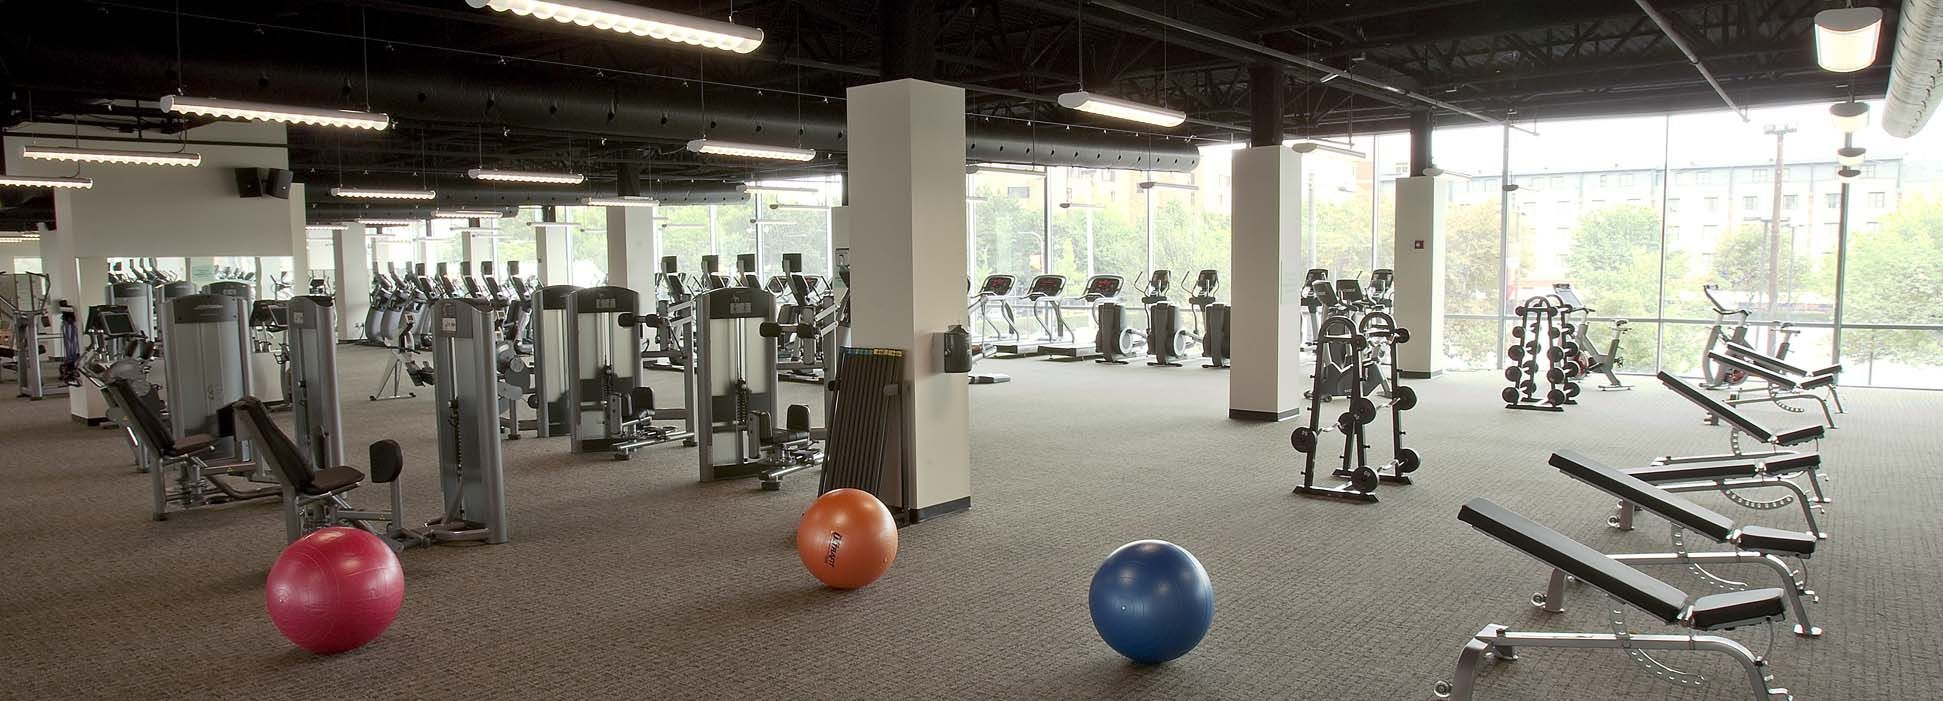 Gym facility equipment